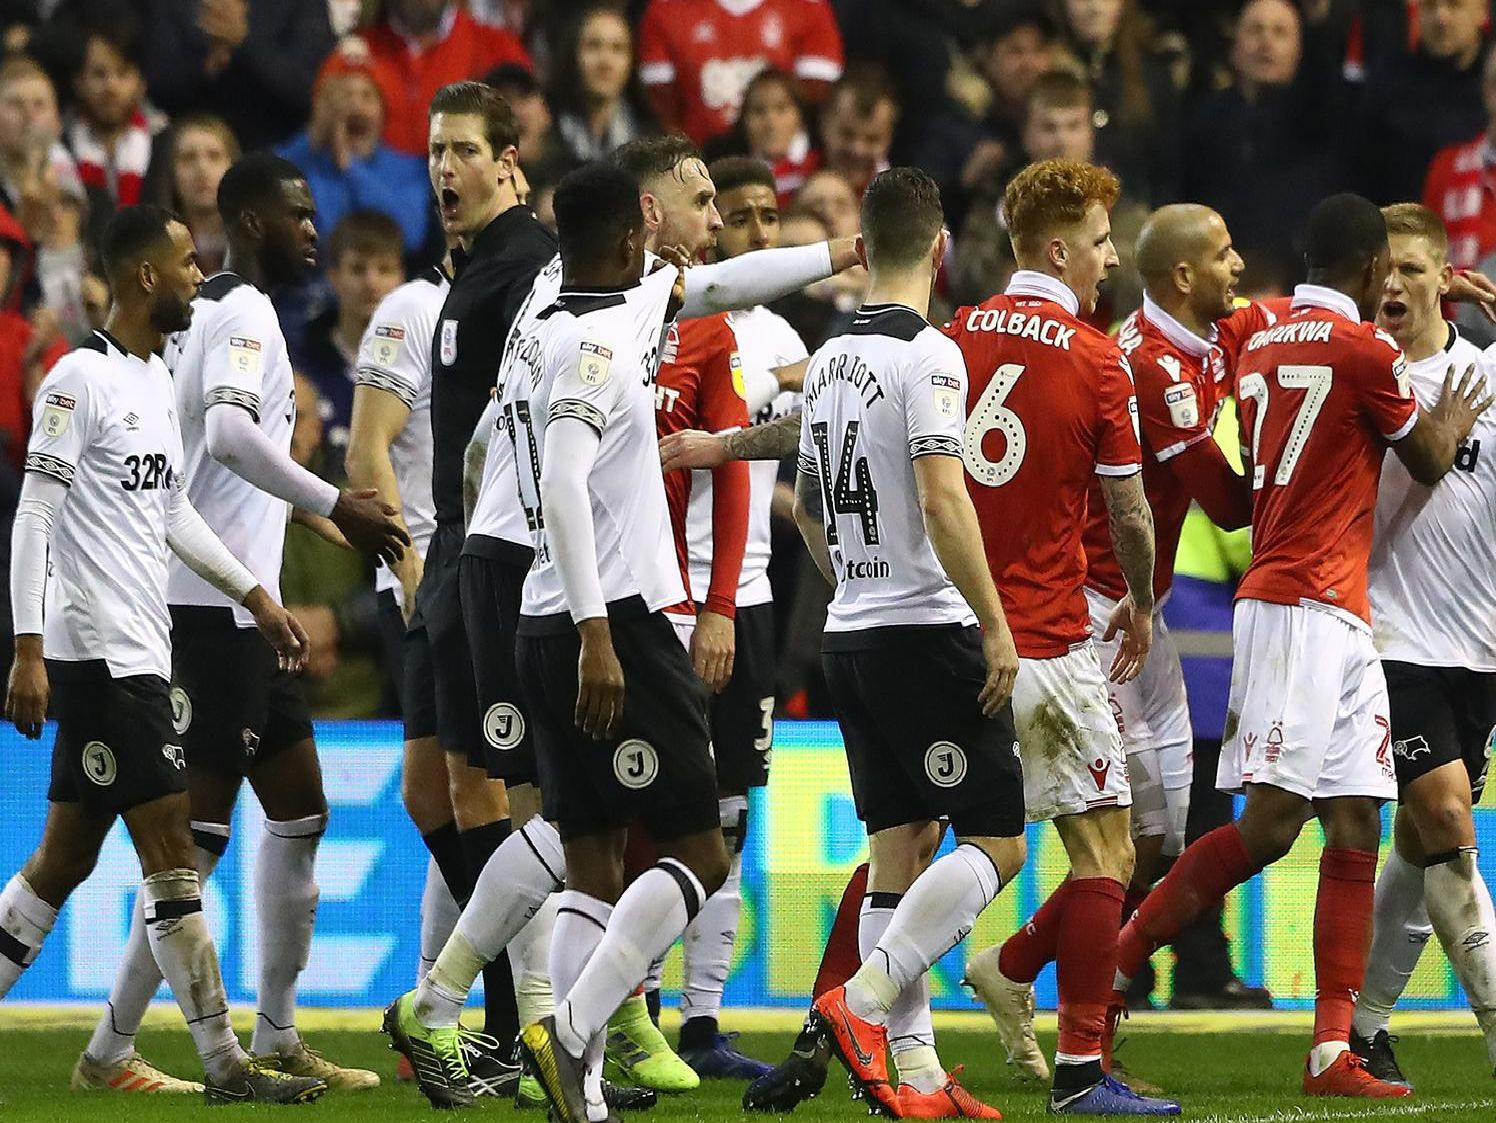 Martyn Waghorn is pulled away by Tendayi Darikwa at the end of the match  between Forest and Derby City Ground on February 25, 2019.